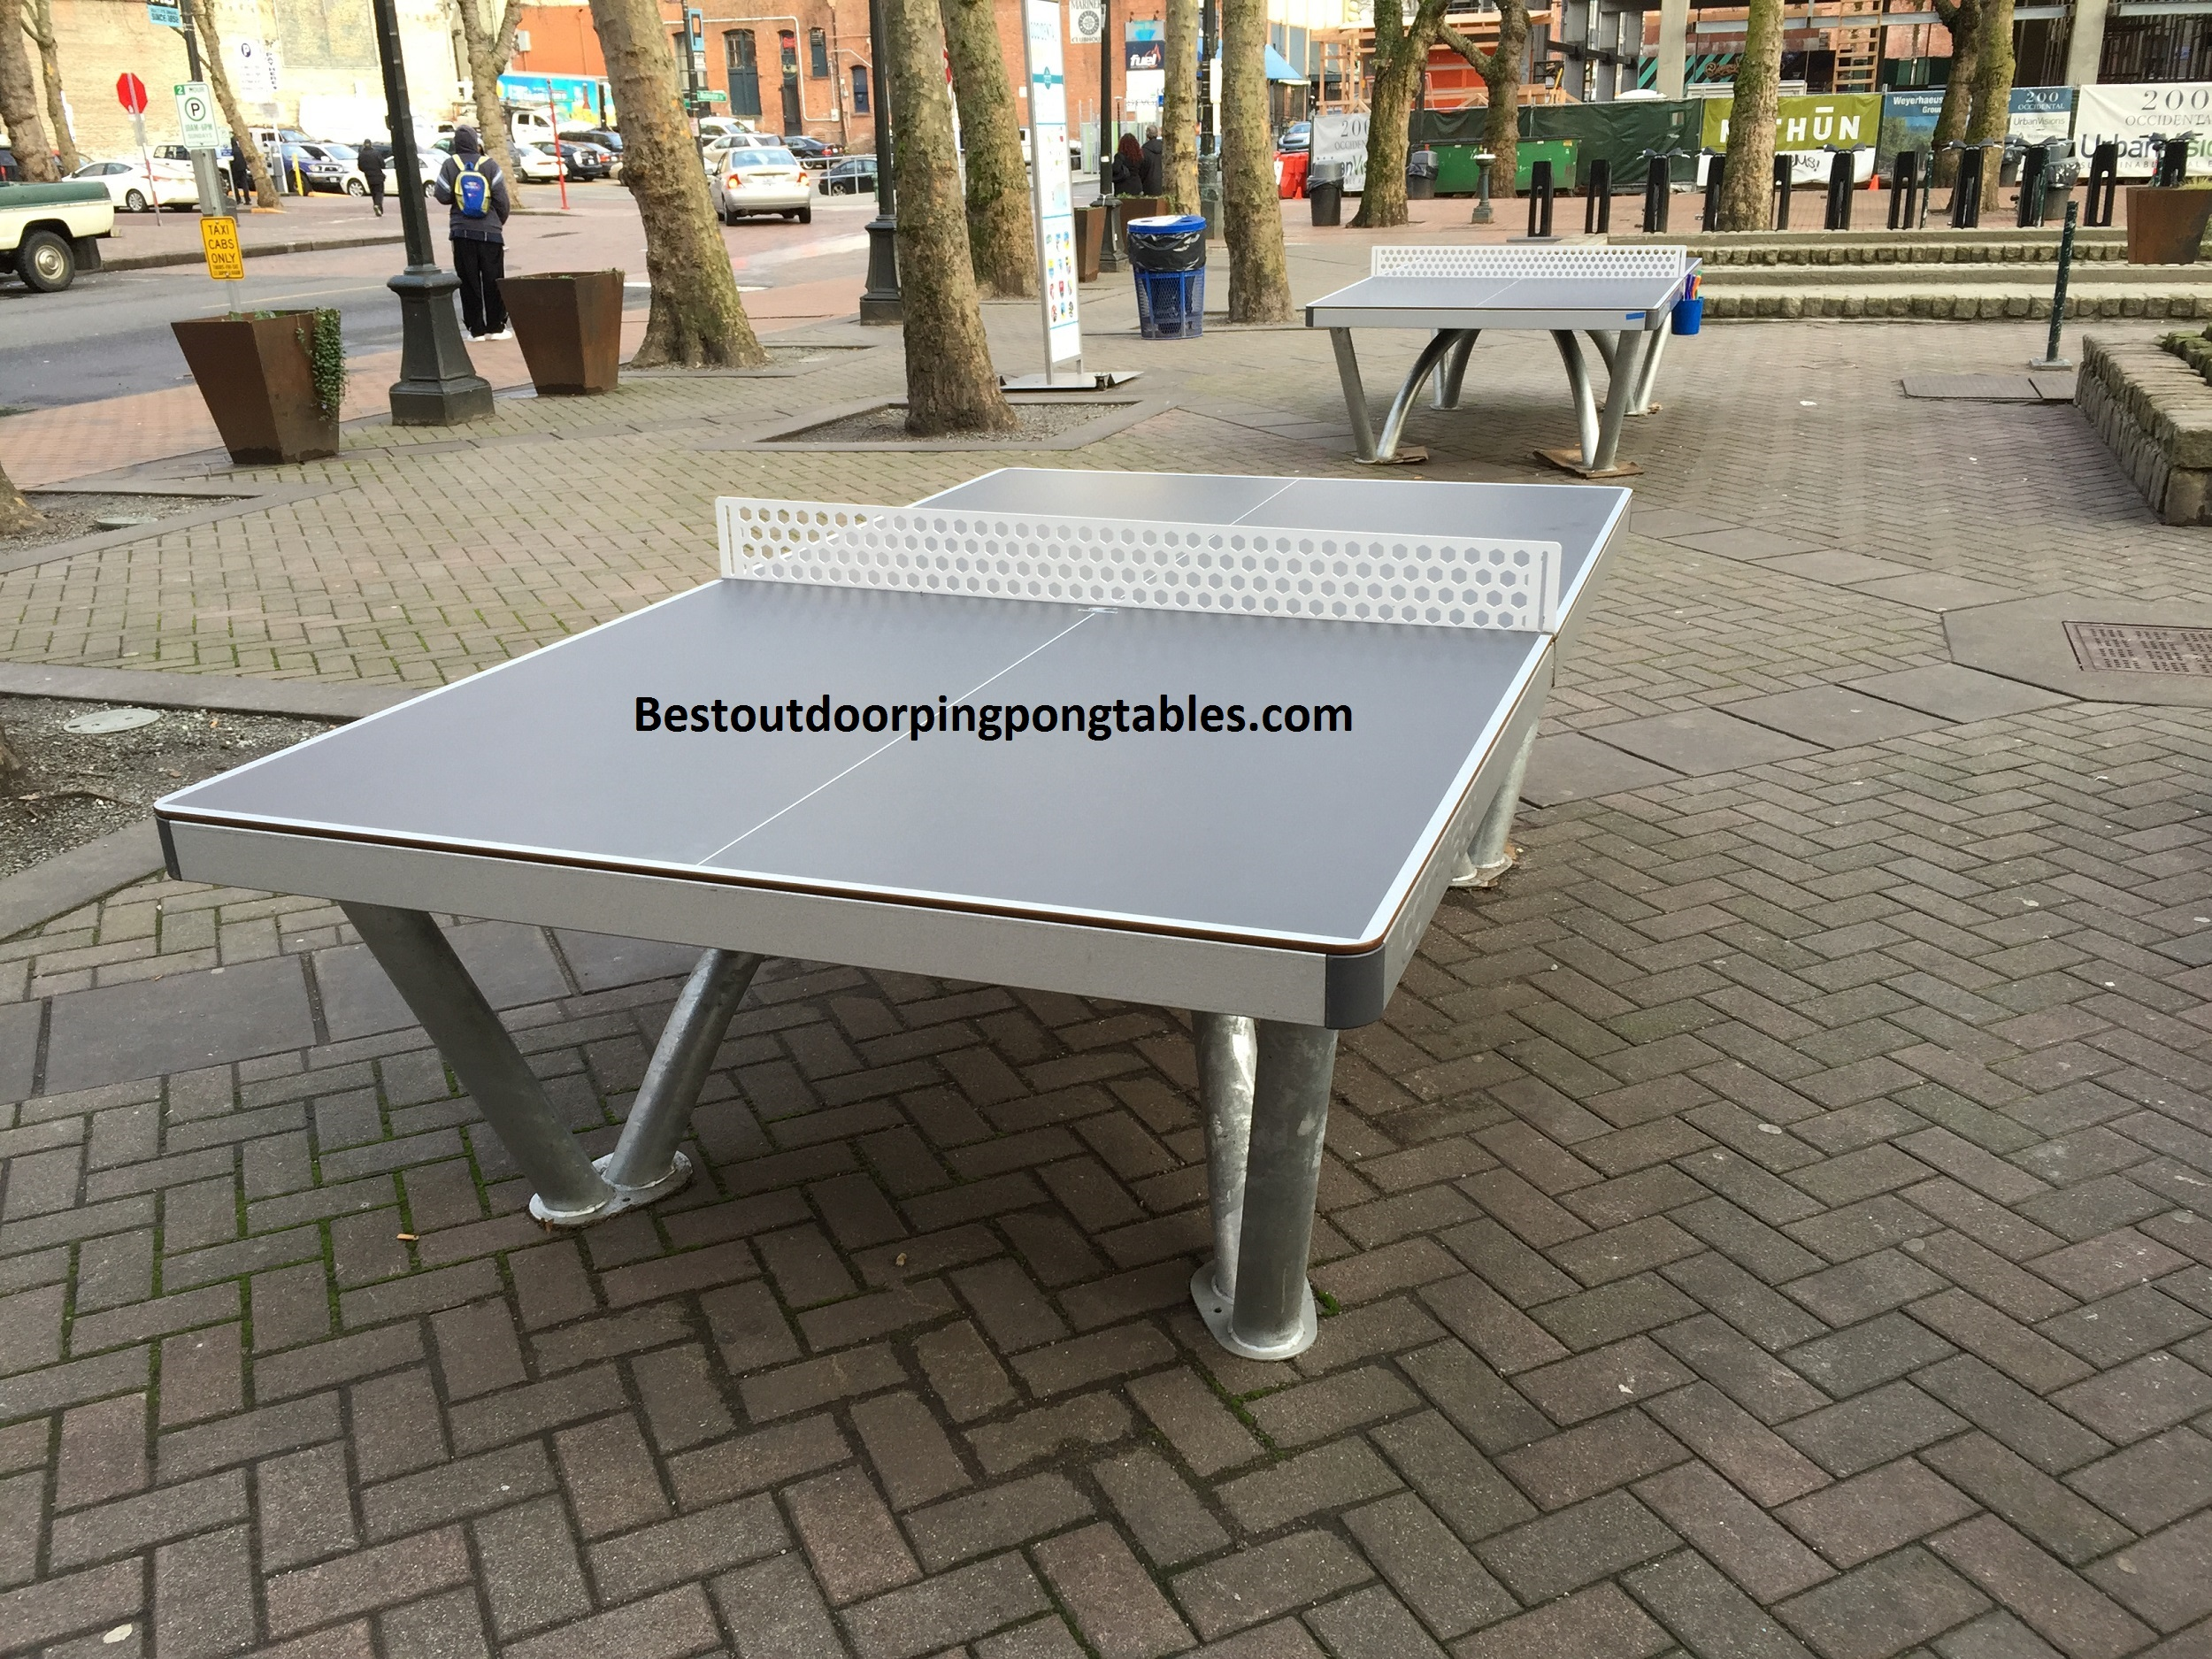 Seattle outdoor ping pong tables - Table de ping pong outdoor cornilleau ...